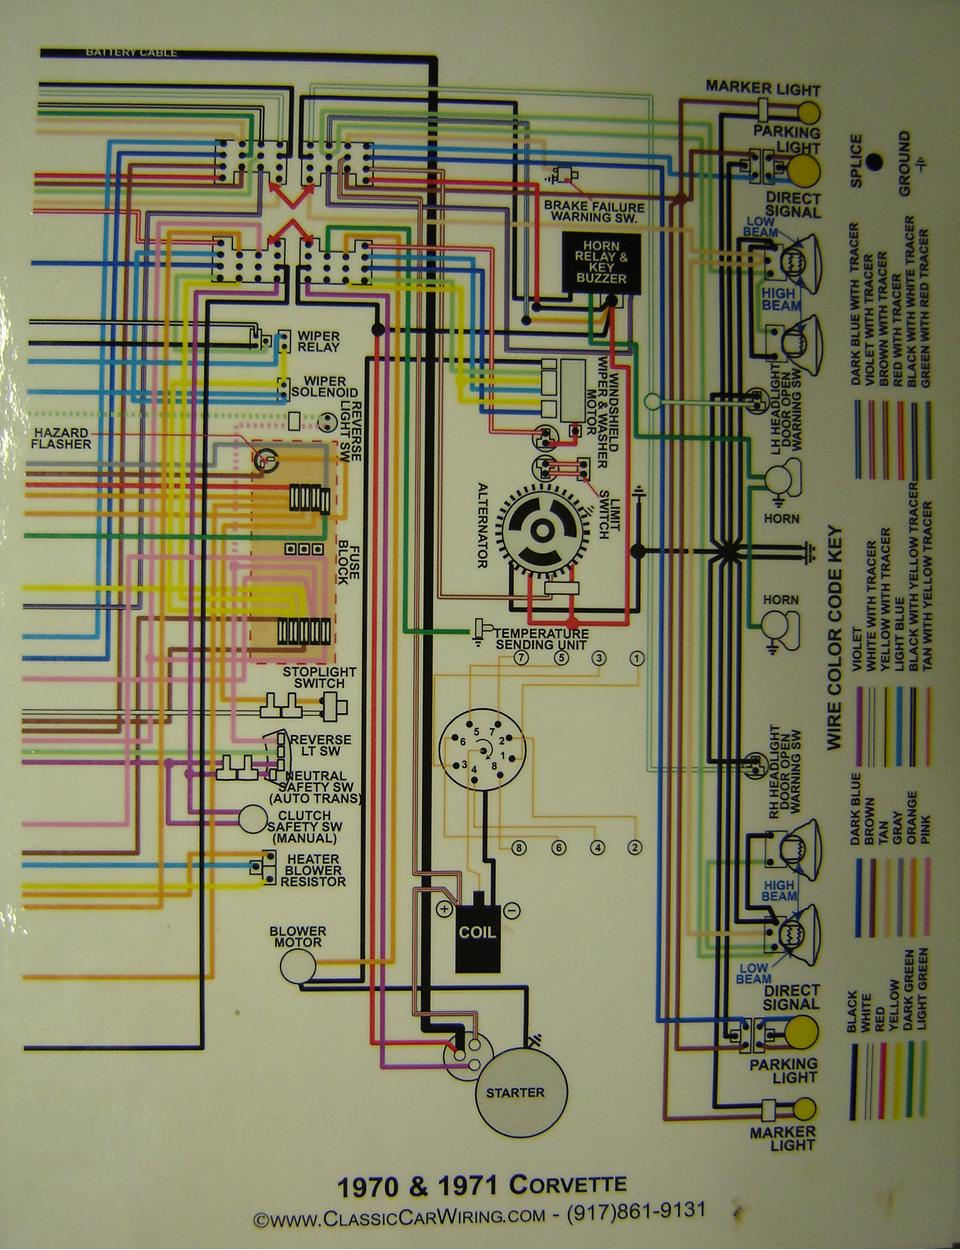 1970 71 corvette color wiring diagram B chevy diagrams 1984 oldsmobile delta 88 wiring diagram at soozxer.org